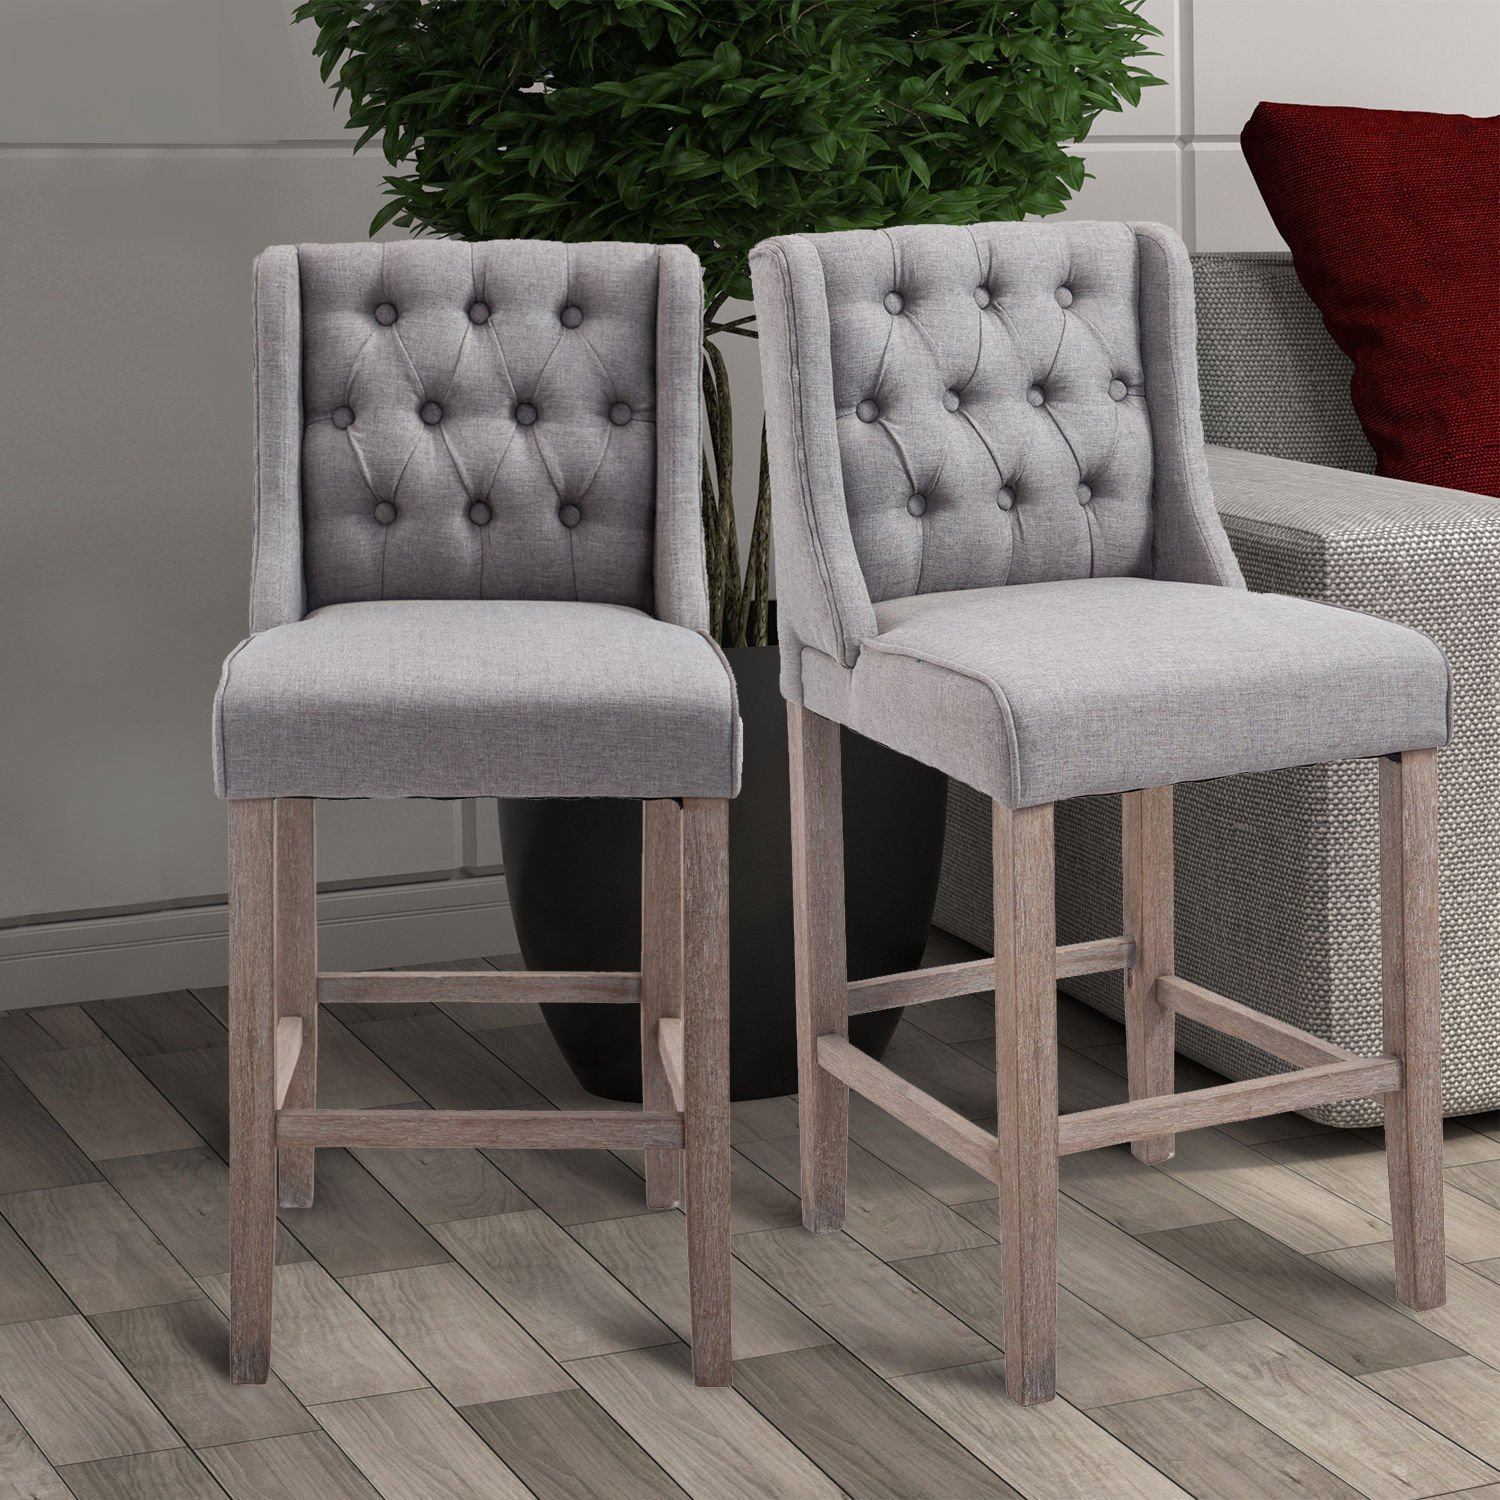 Amazon com homcom modern bar height fabric wingback dining chairs with tufted buttons grey set of 2 chairs kitchen dining